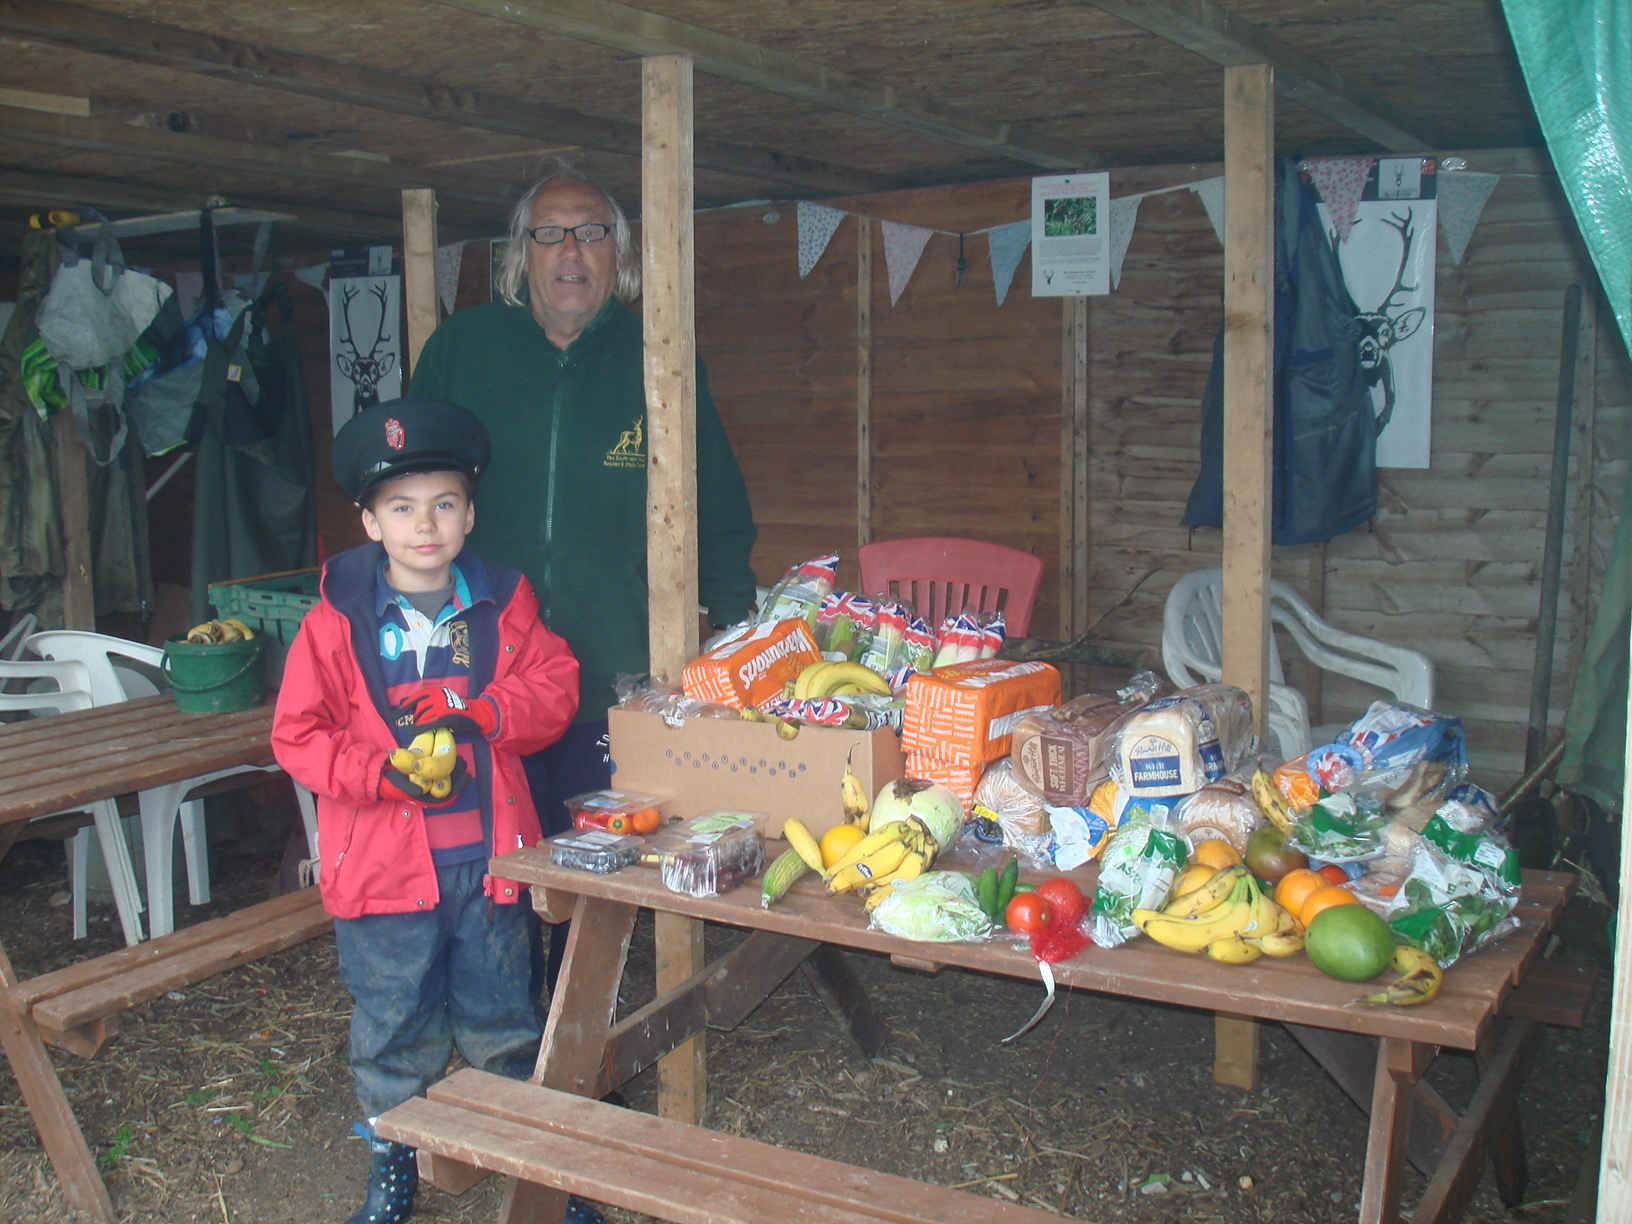 GRATEFUL: Mike Gage and a young volunteer pictured with their latest Lidl haul